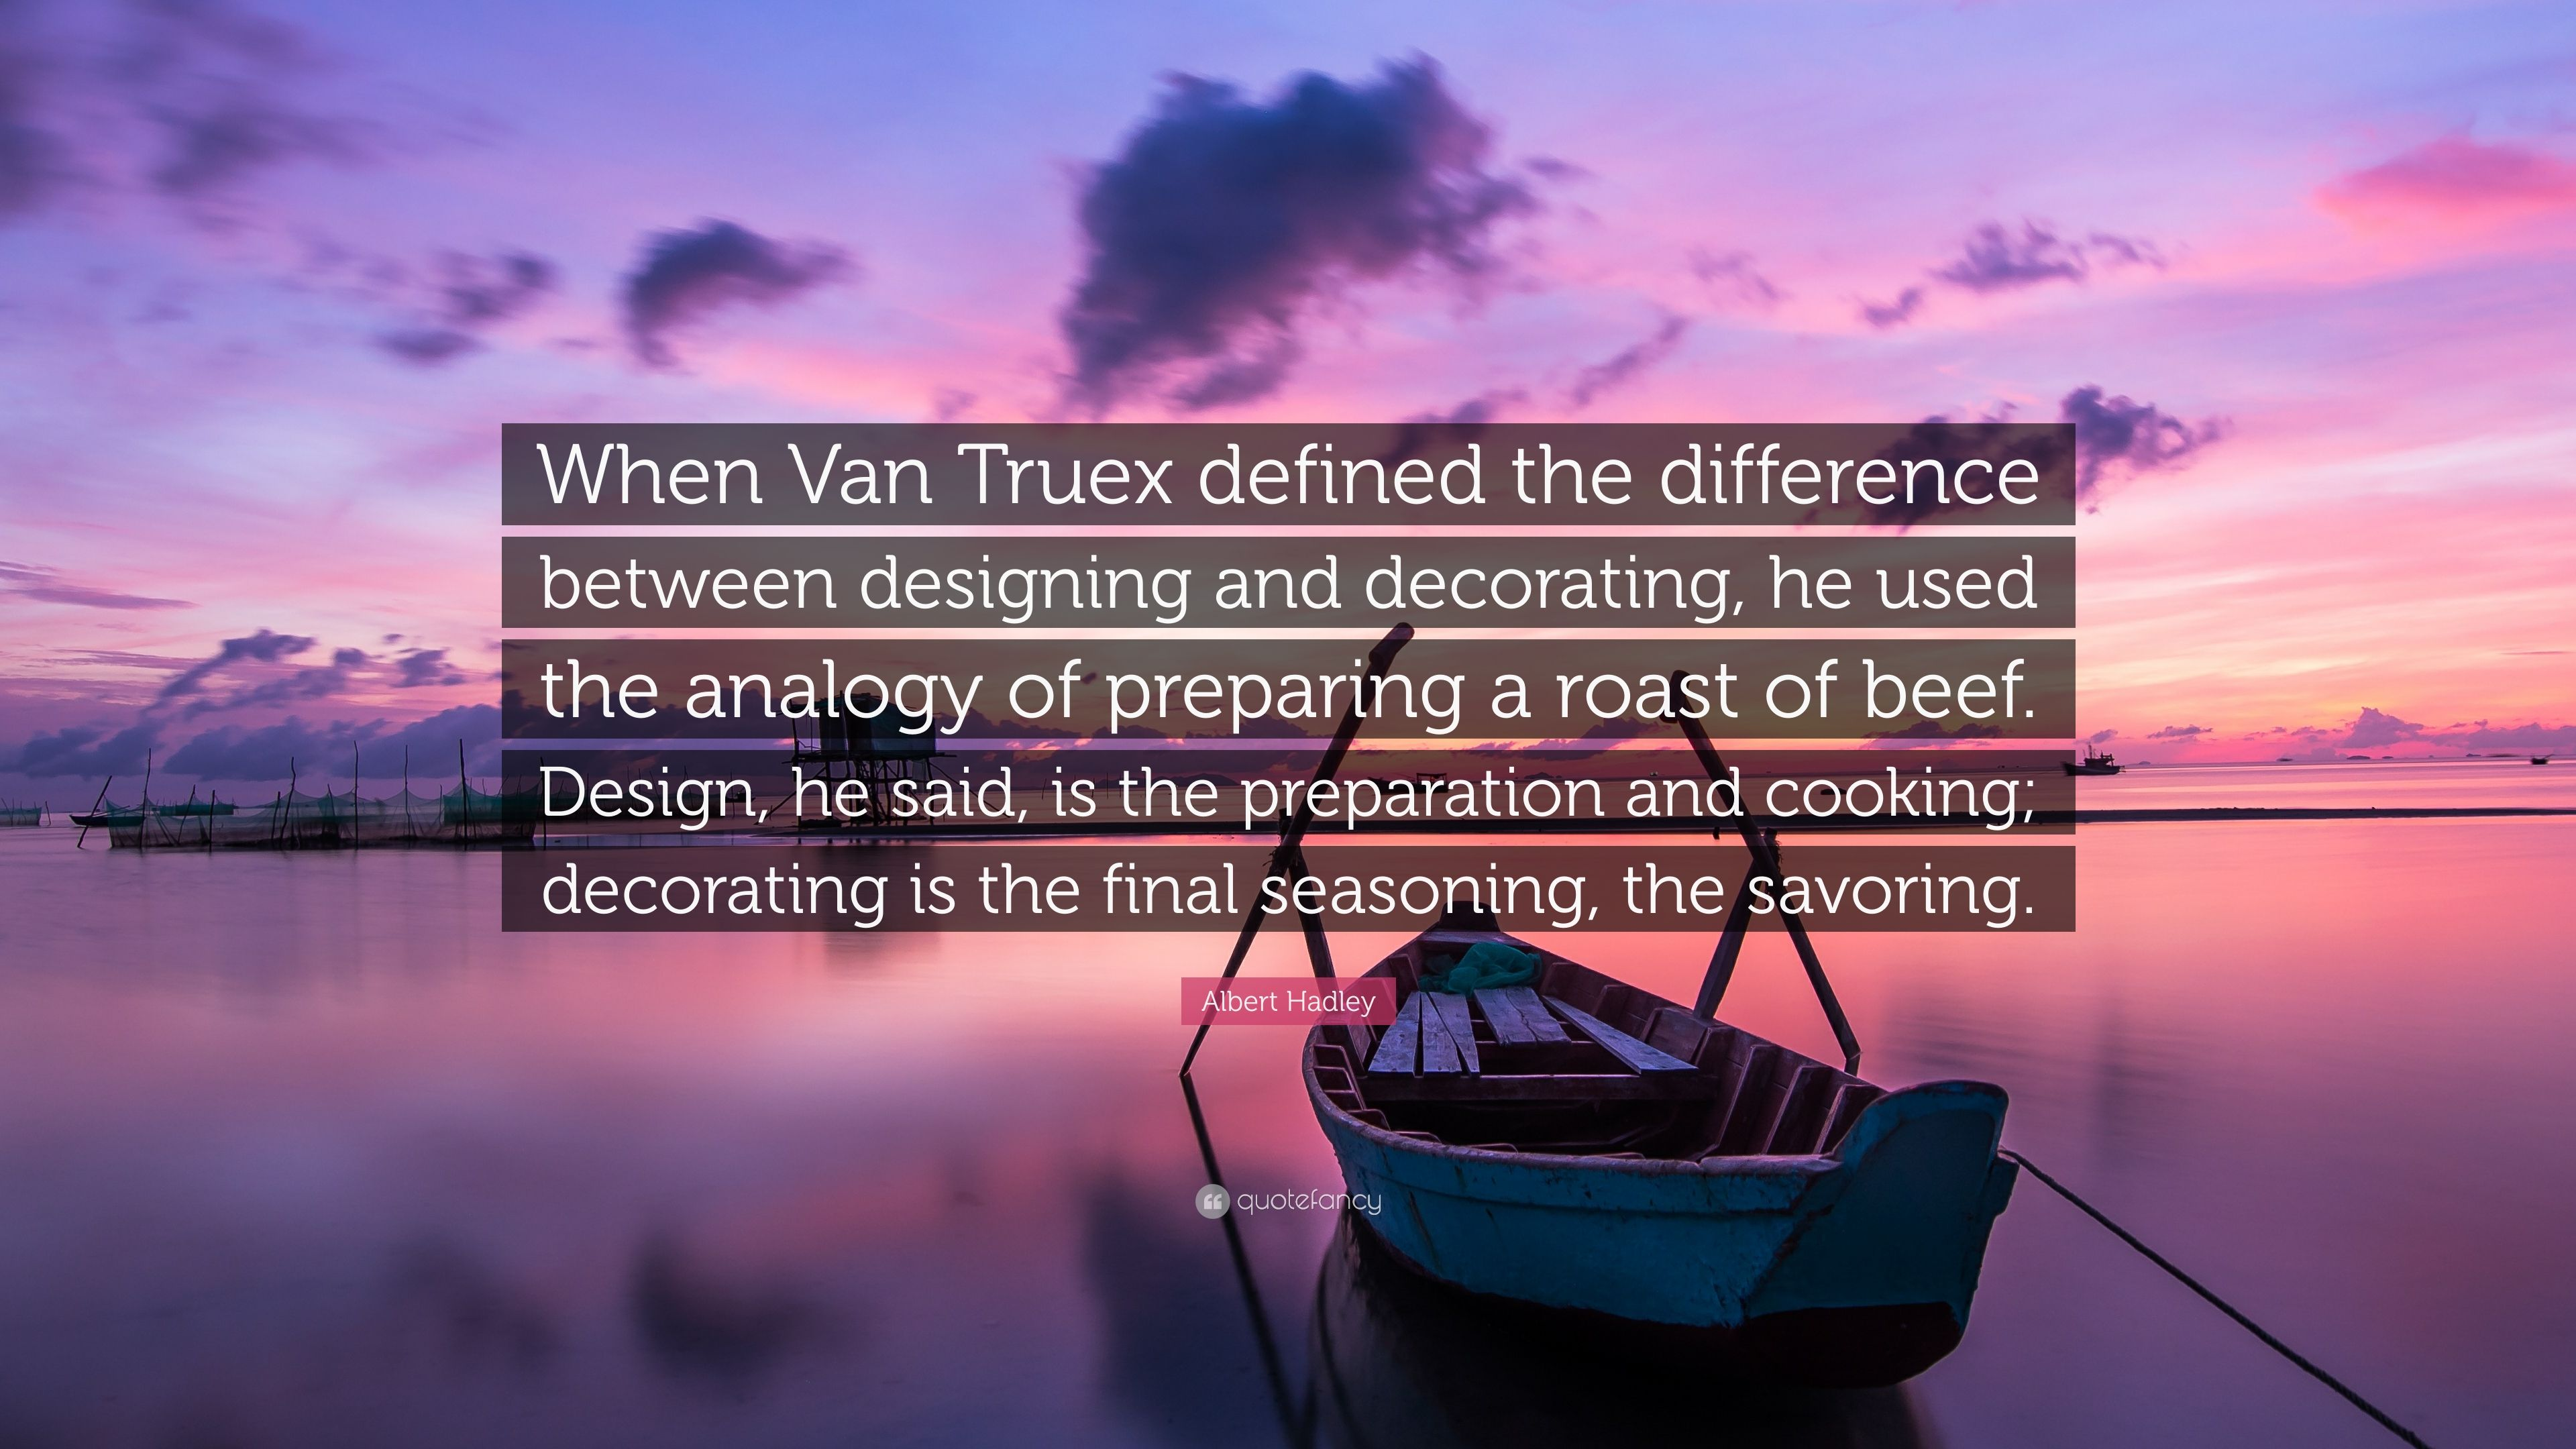 Albert Hadley Quote When Van Truex Defined The Difference Between